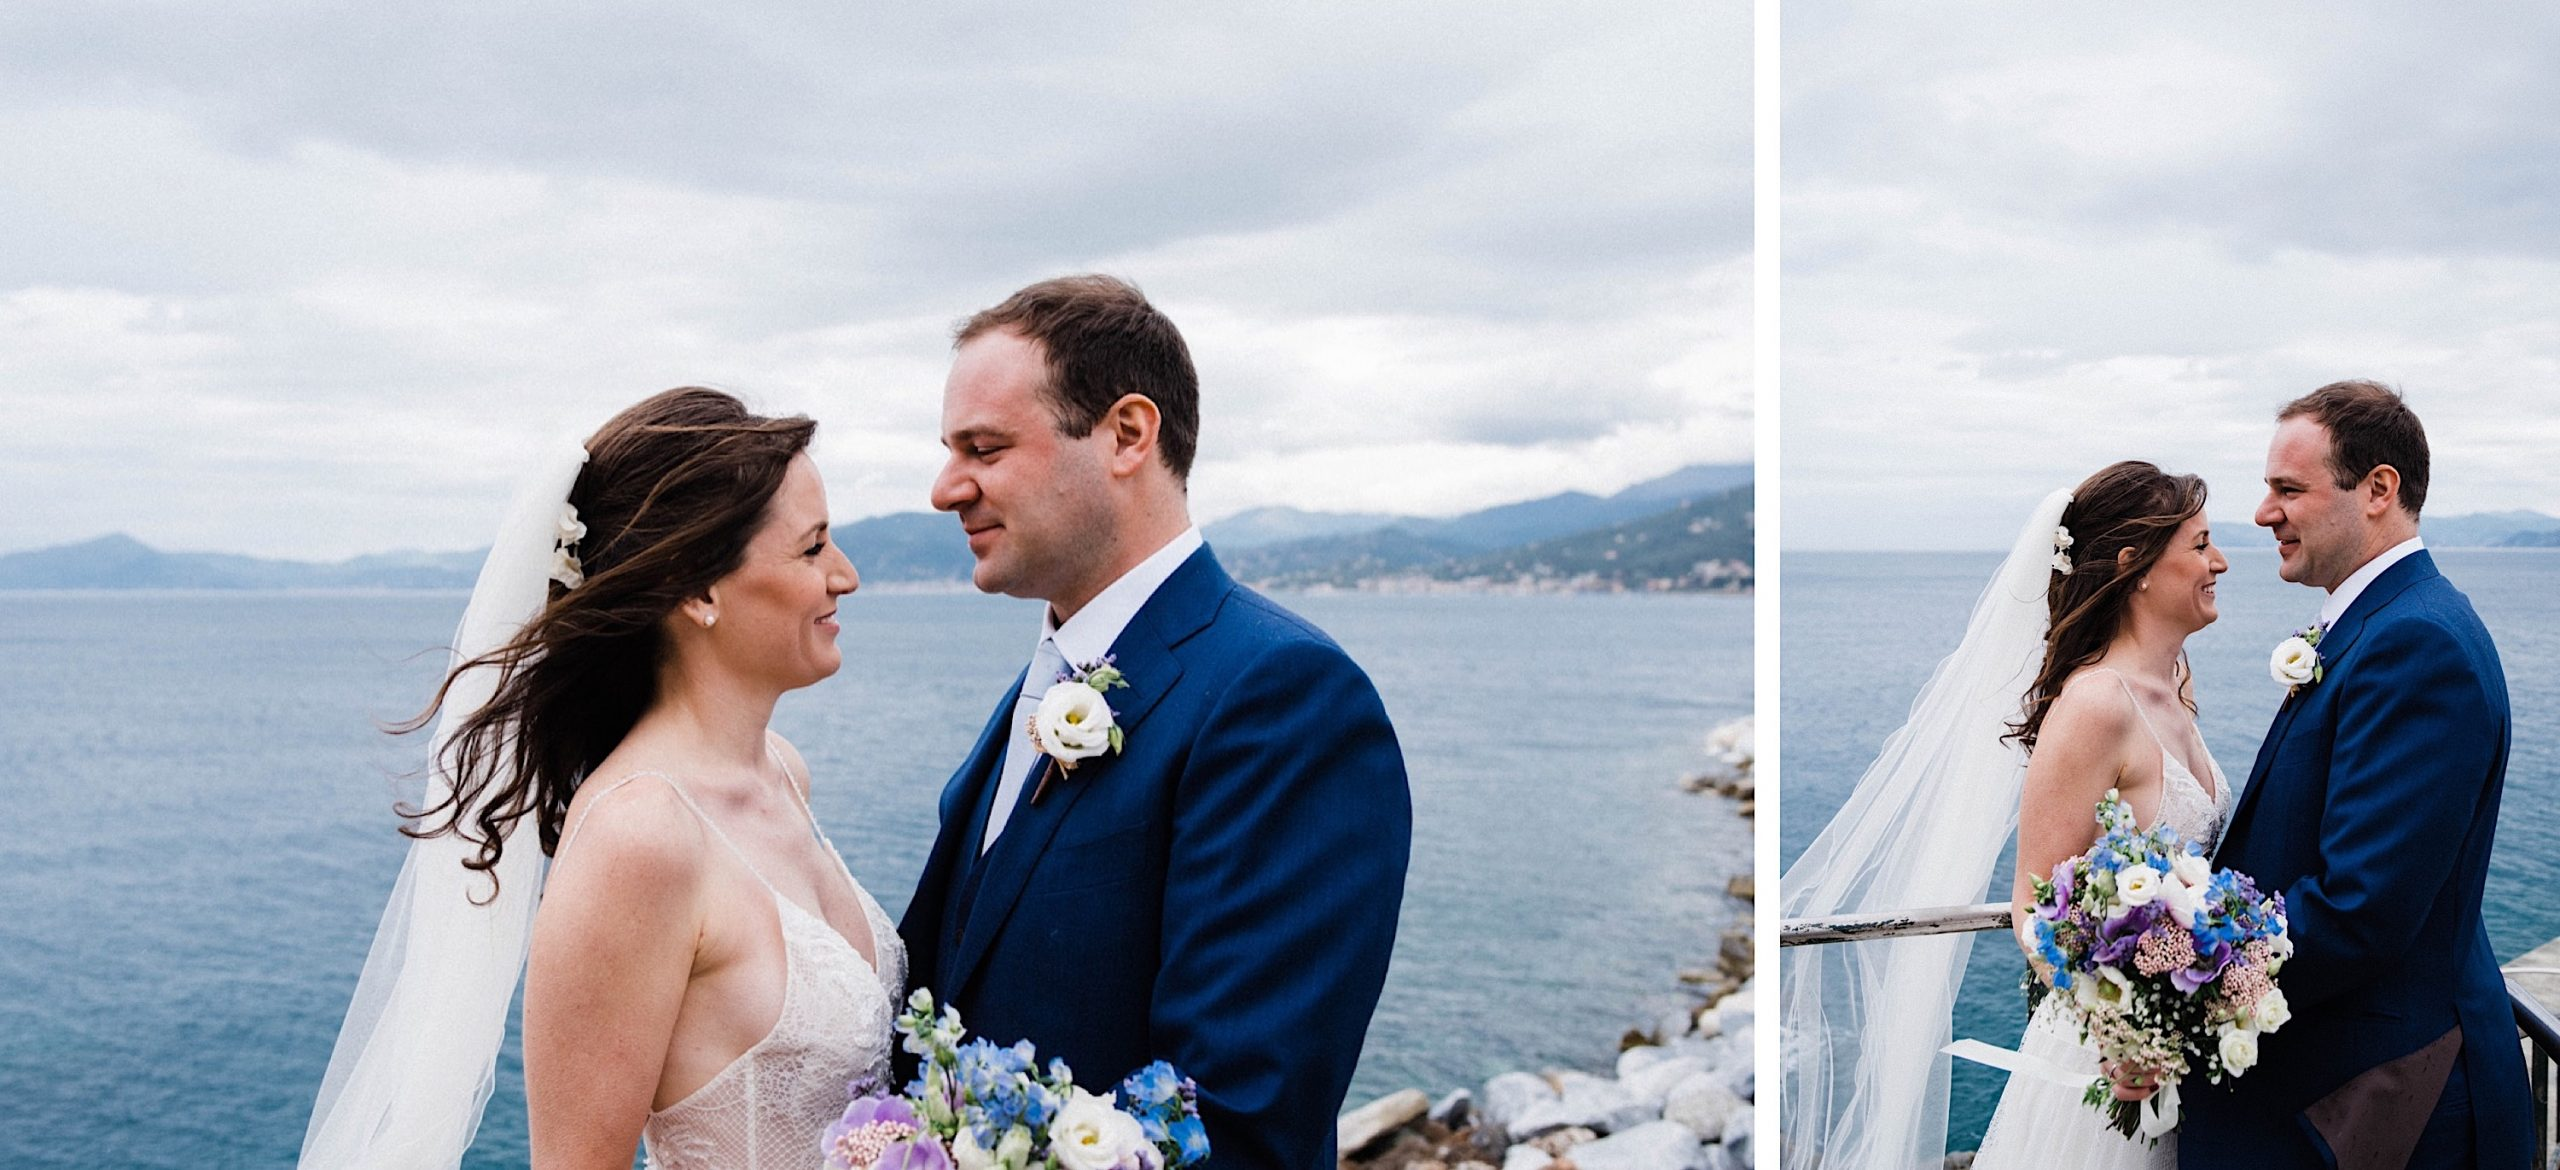 Two wedding portraits of the bride & groom at the docks in Sestri Levante looking over the Meditteranean.